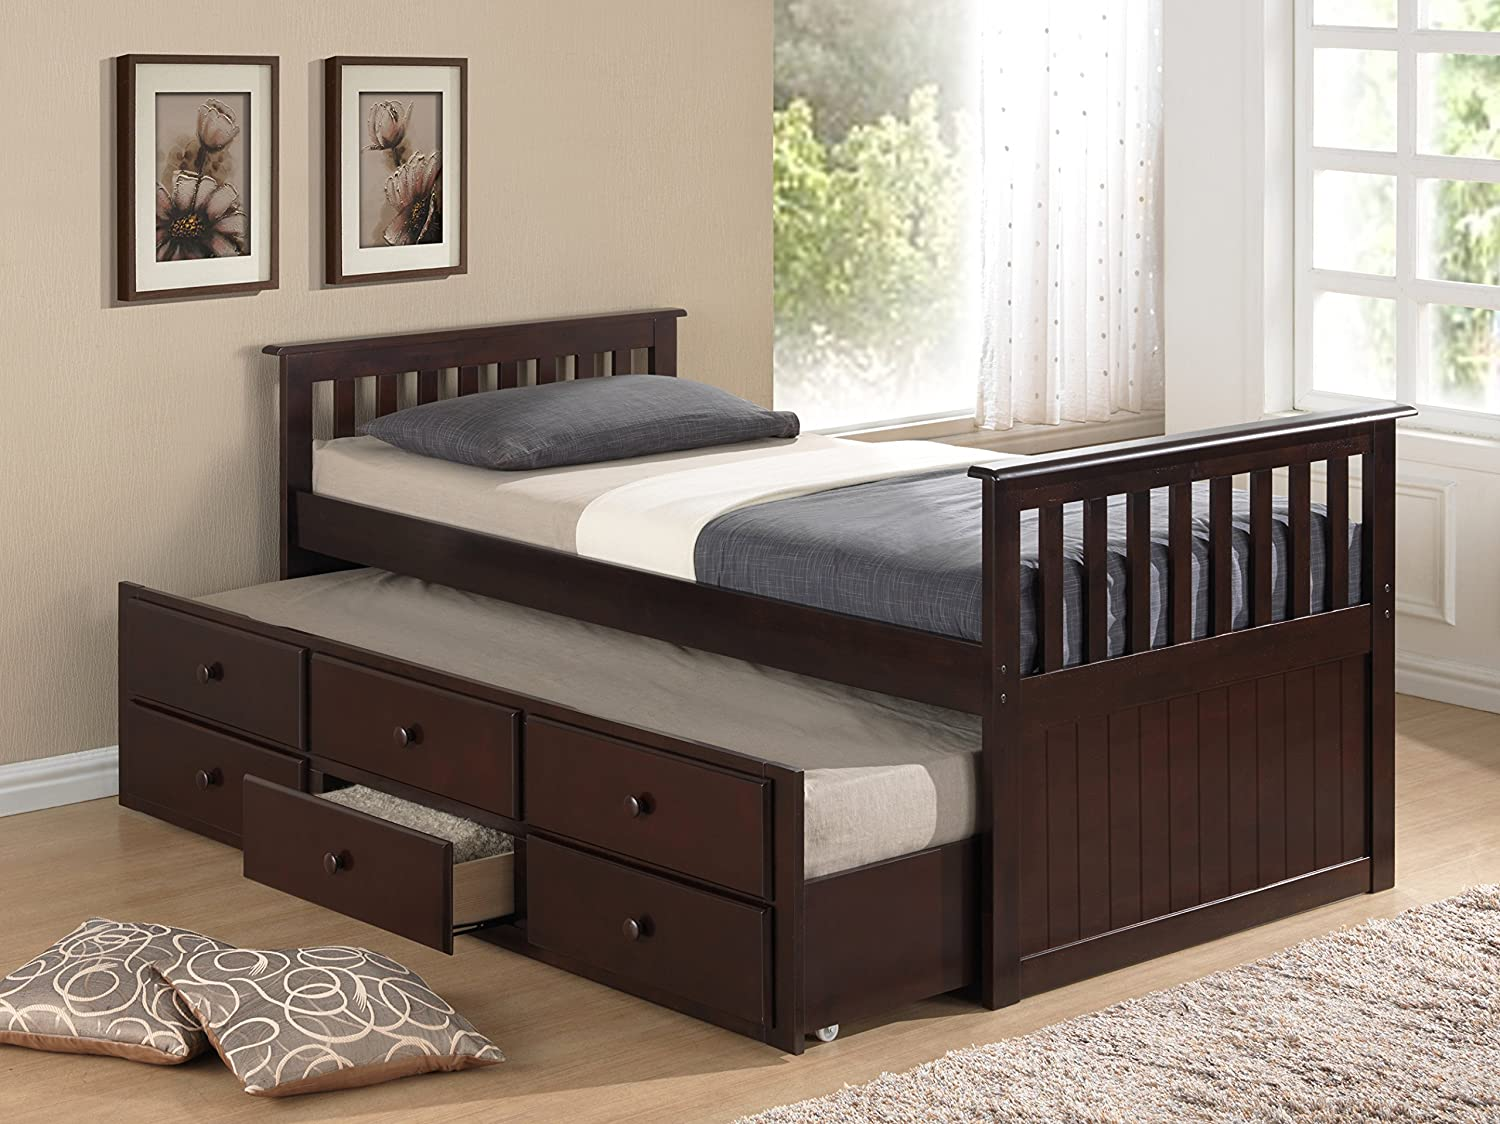 Amazon com  Broyhill Kids Marco Island Captain s Bed with Trundle Bed and  Drawers  Espresso  Kitchen   Dining. Amazon com  Broyhill Kids Marco Island Captain s Bed with Trundle